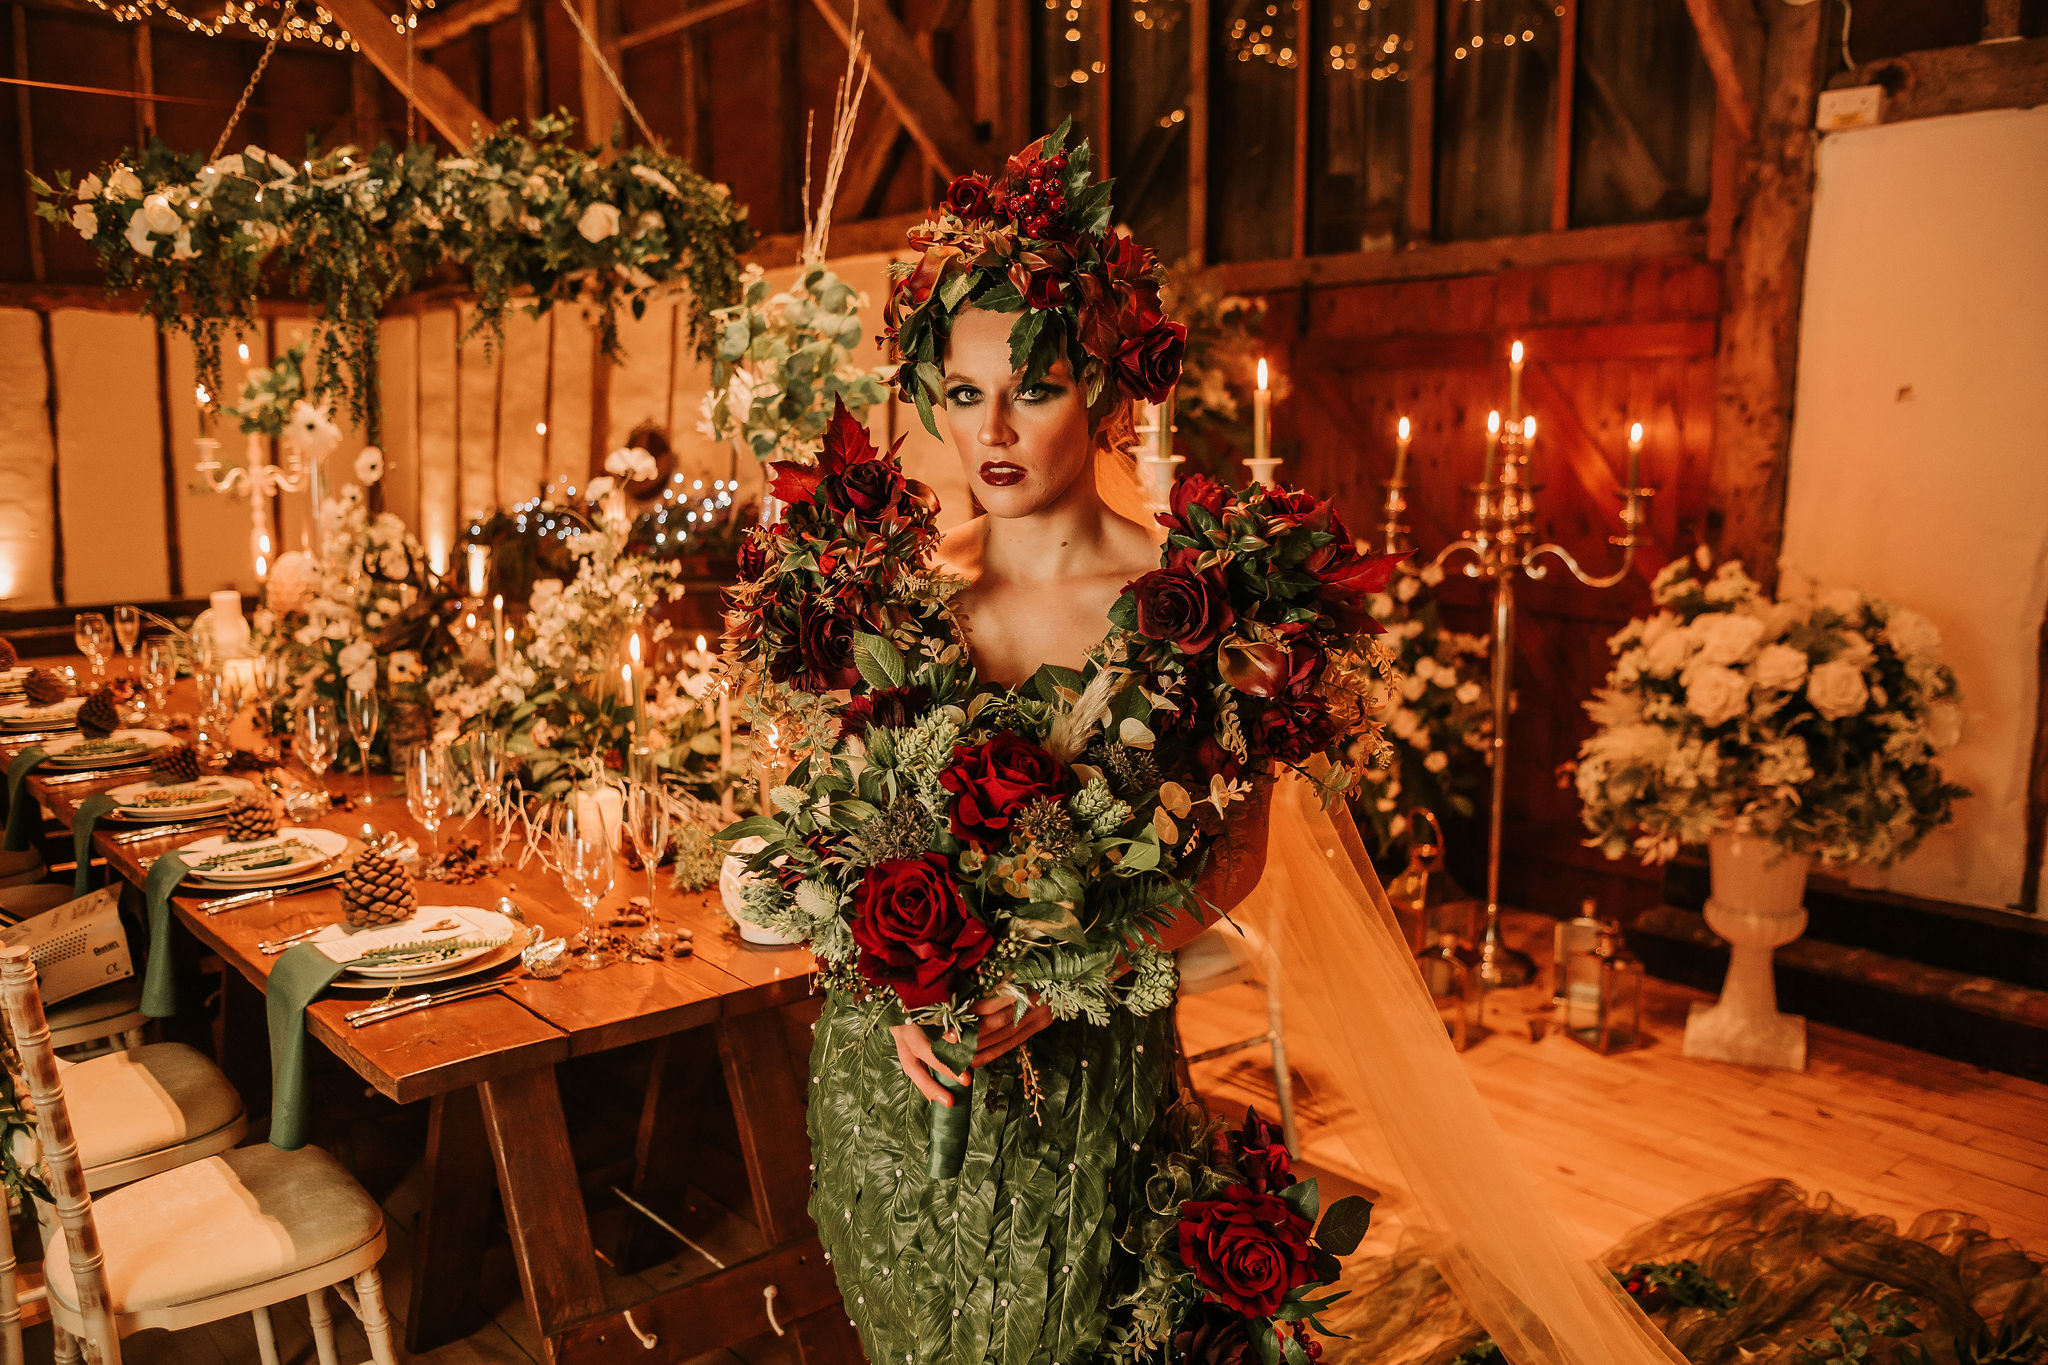 enchanting winter wedding - alternative wedding styling - unique wedding - avant garde bridal inspiration - unconventional wedding